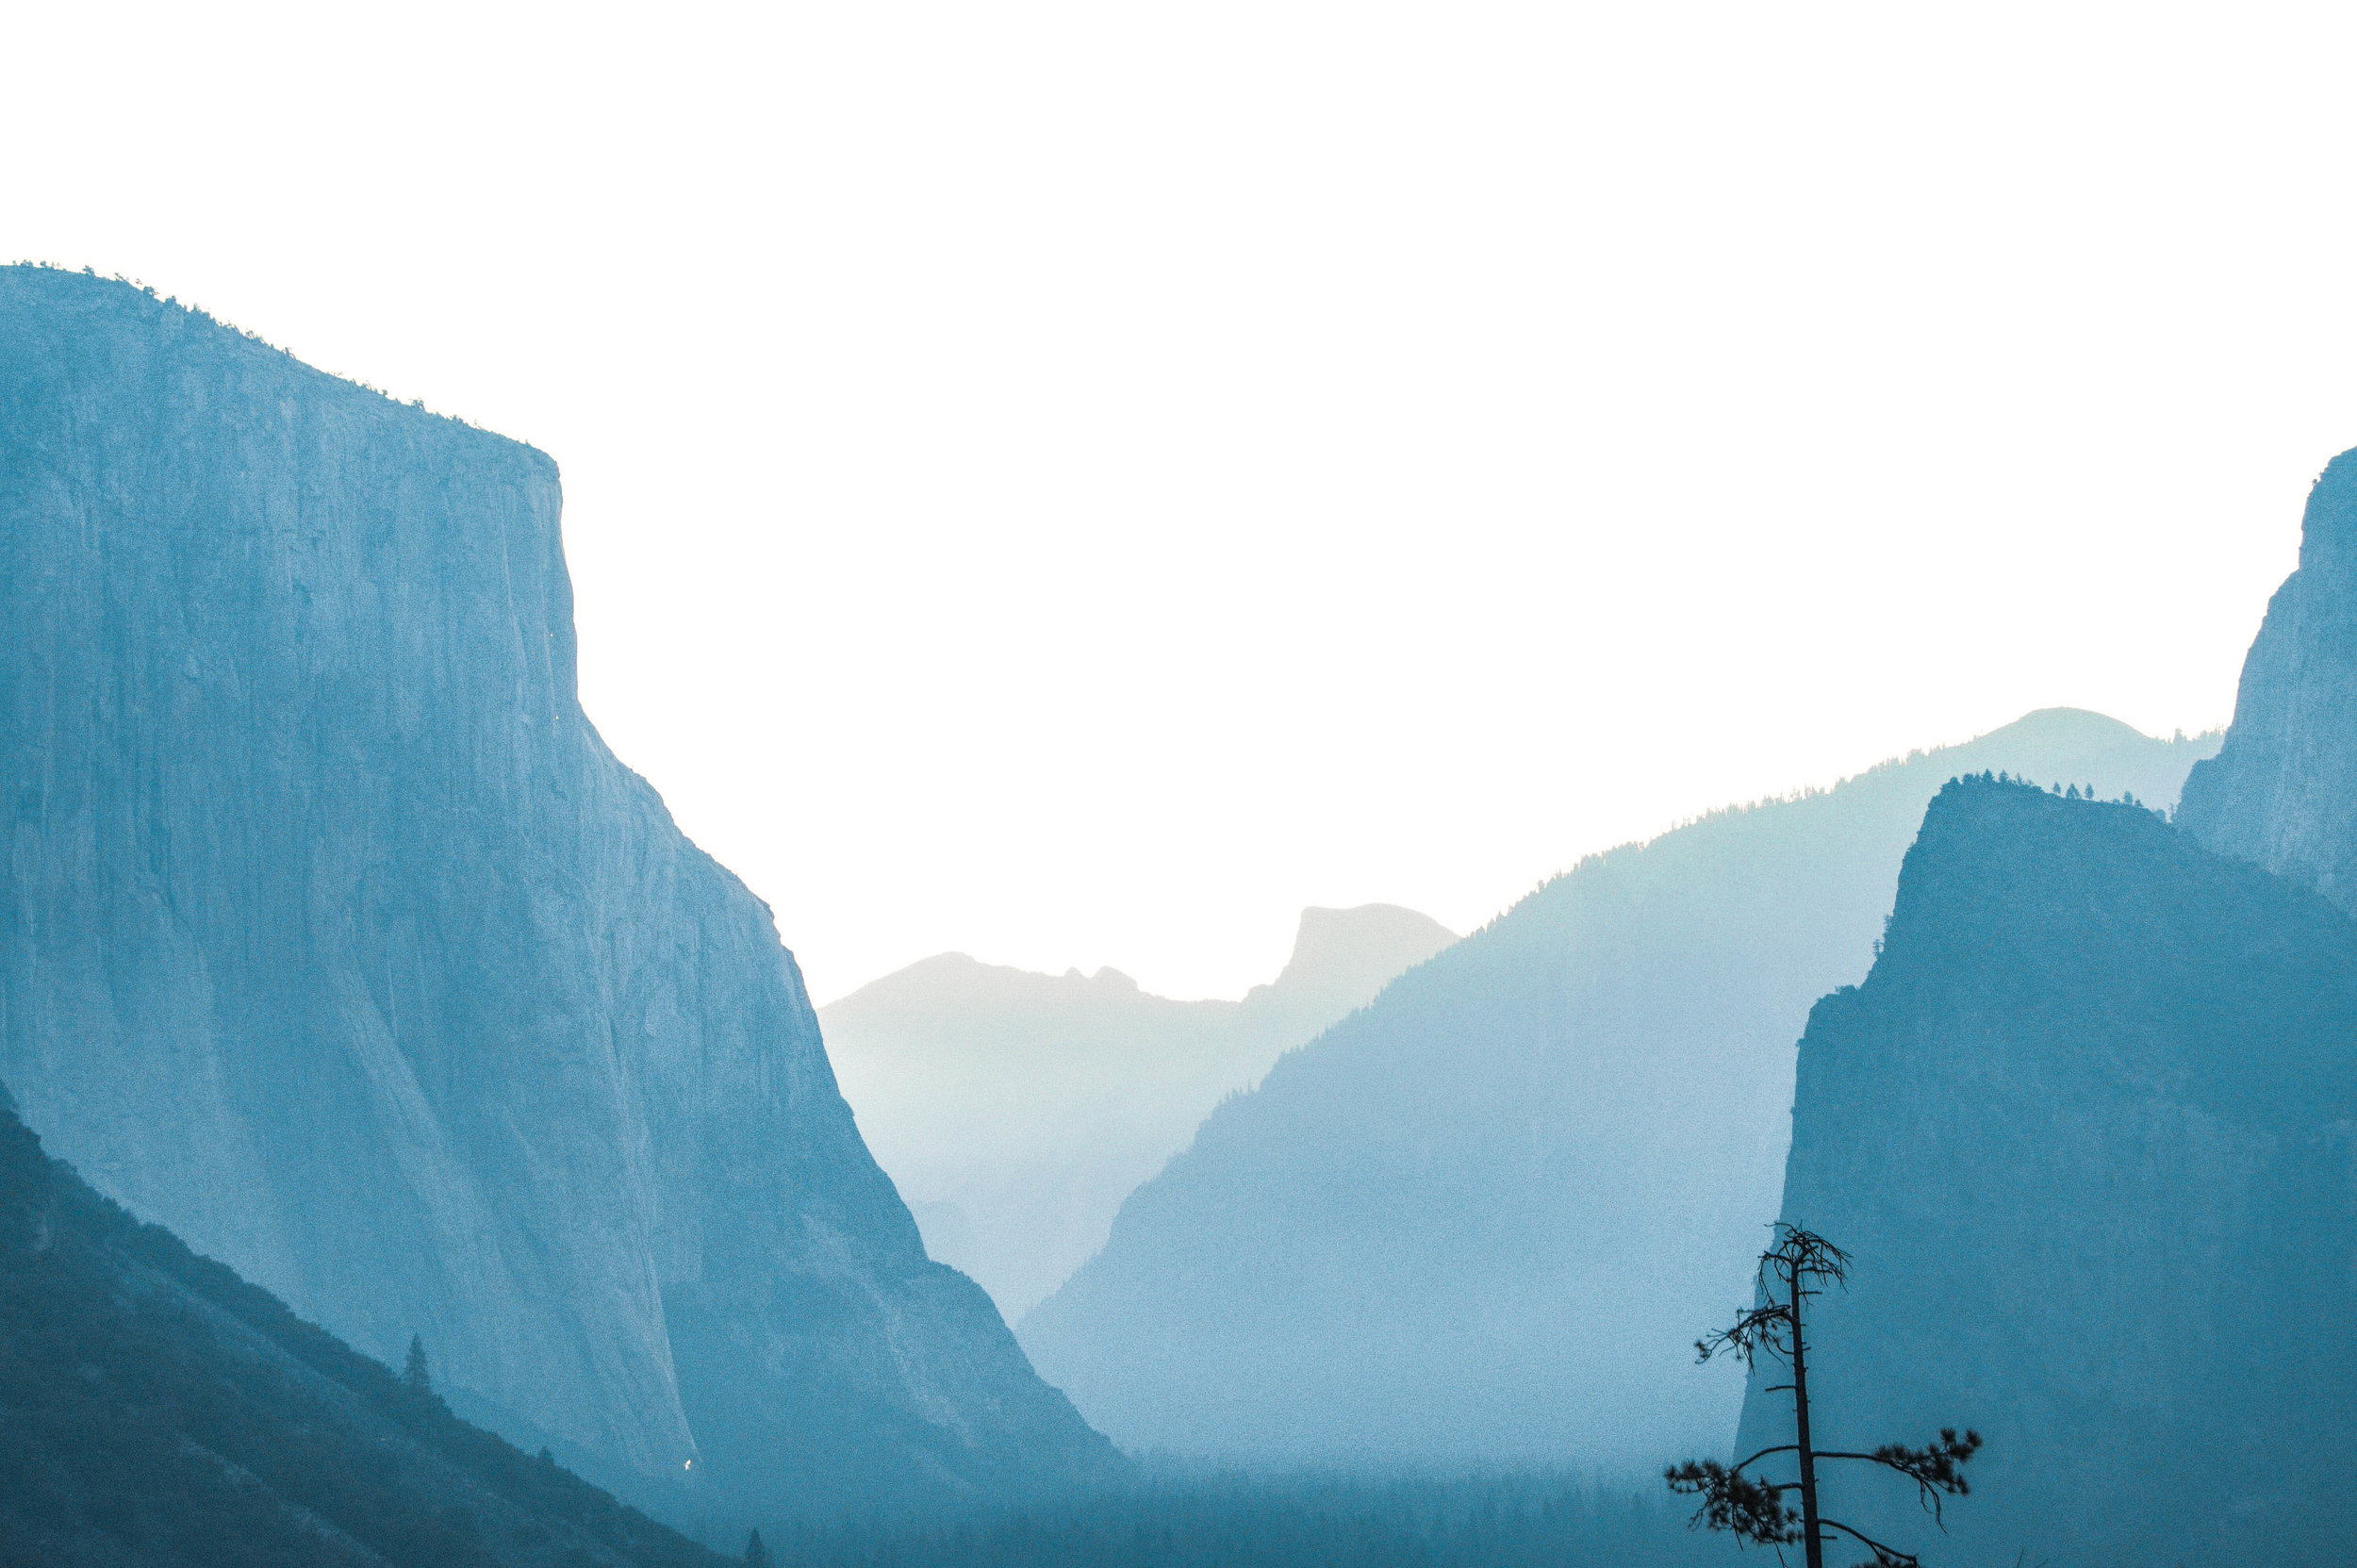 Yosemite_Blue_gradient.jpg